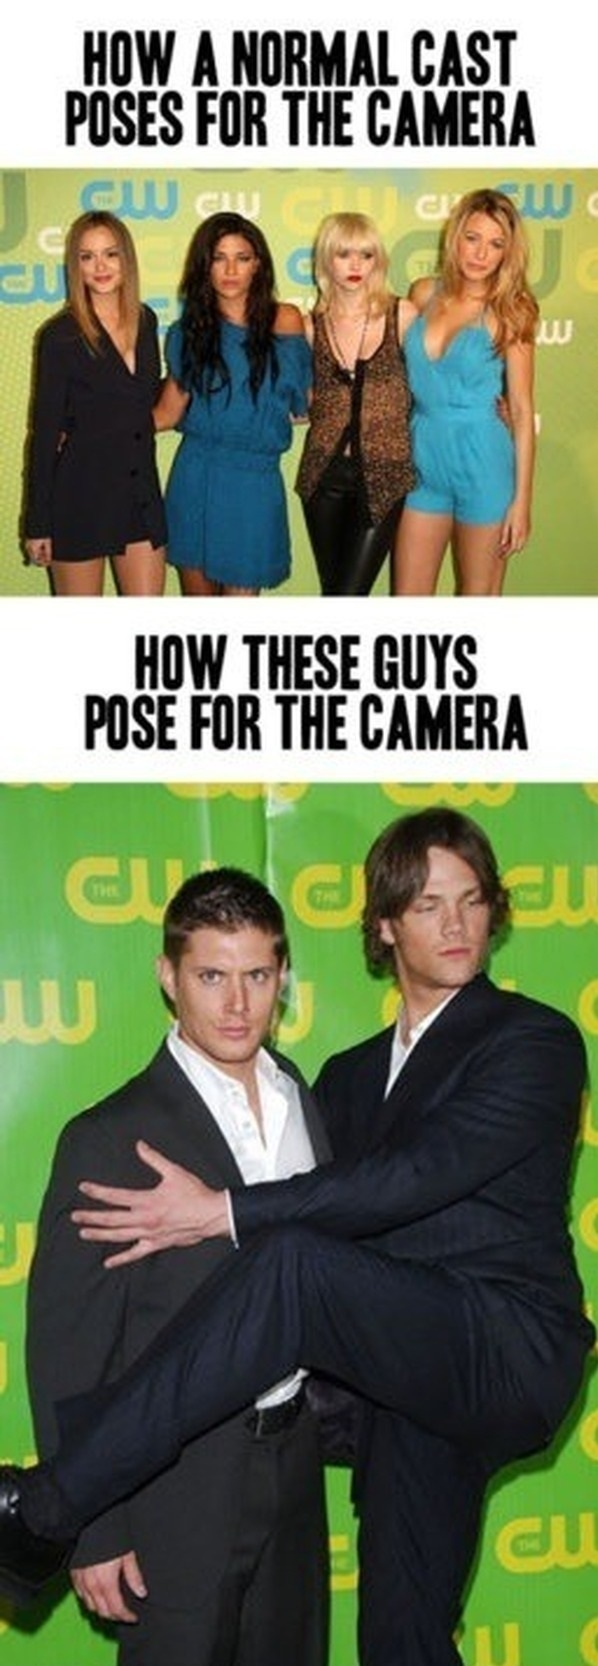 funny-picture-cast-pose-supernatural